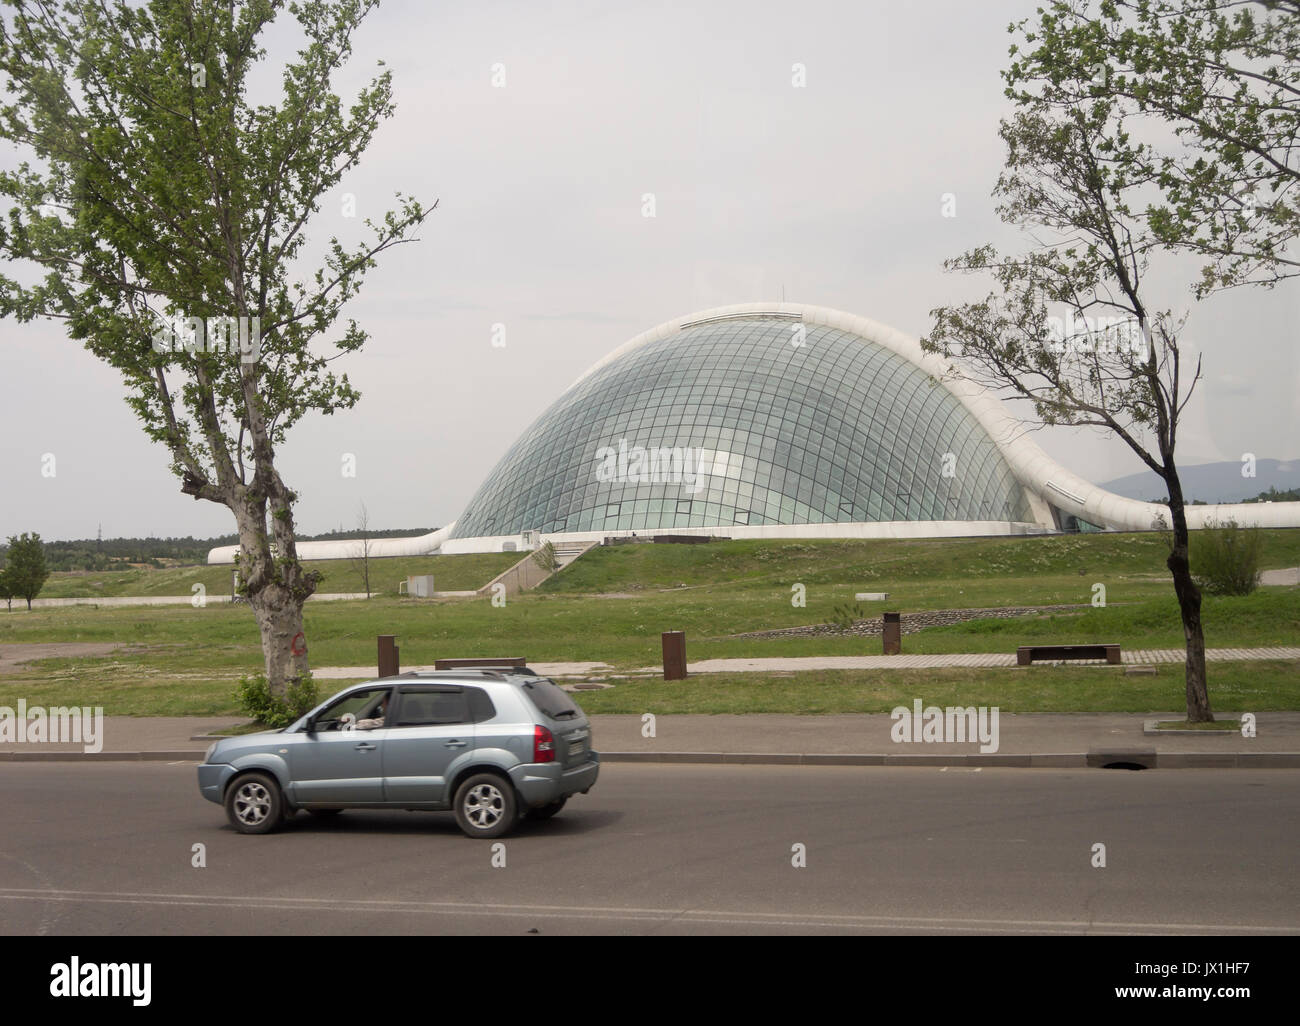 The Parliament of Georgia in the second largest Georgian city Kutaisi, a glass dome for transparency, relocated to spread power around the country - Stock Image